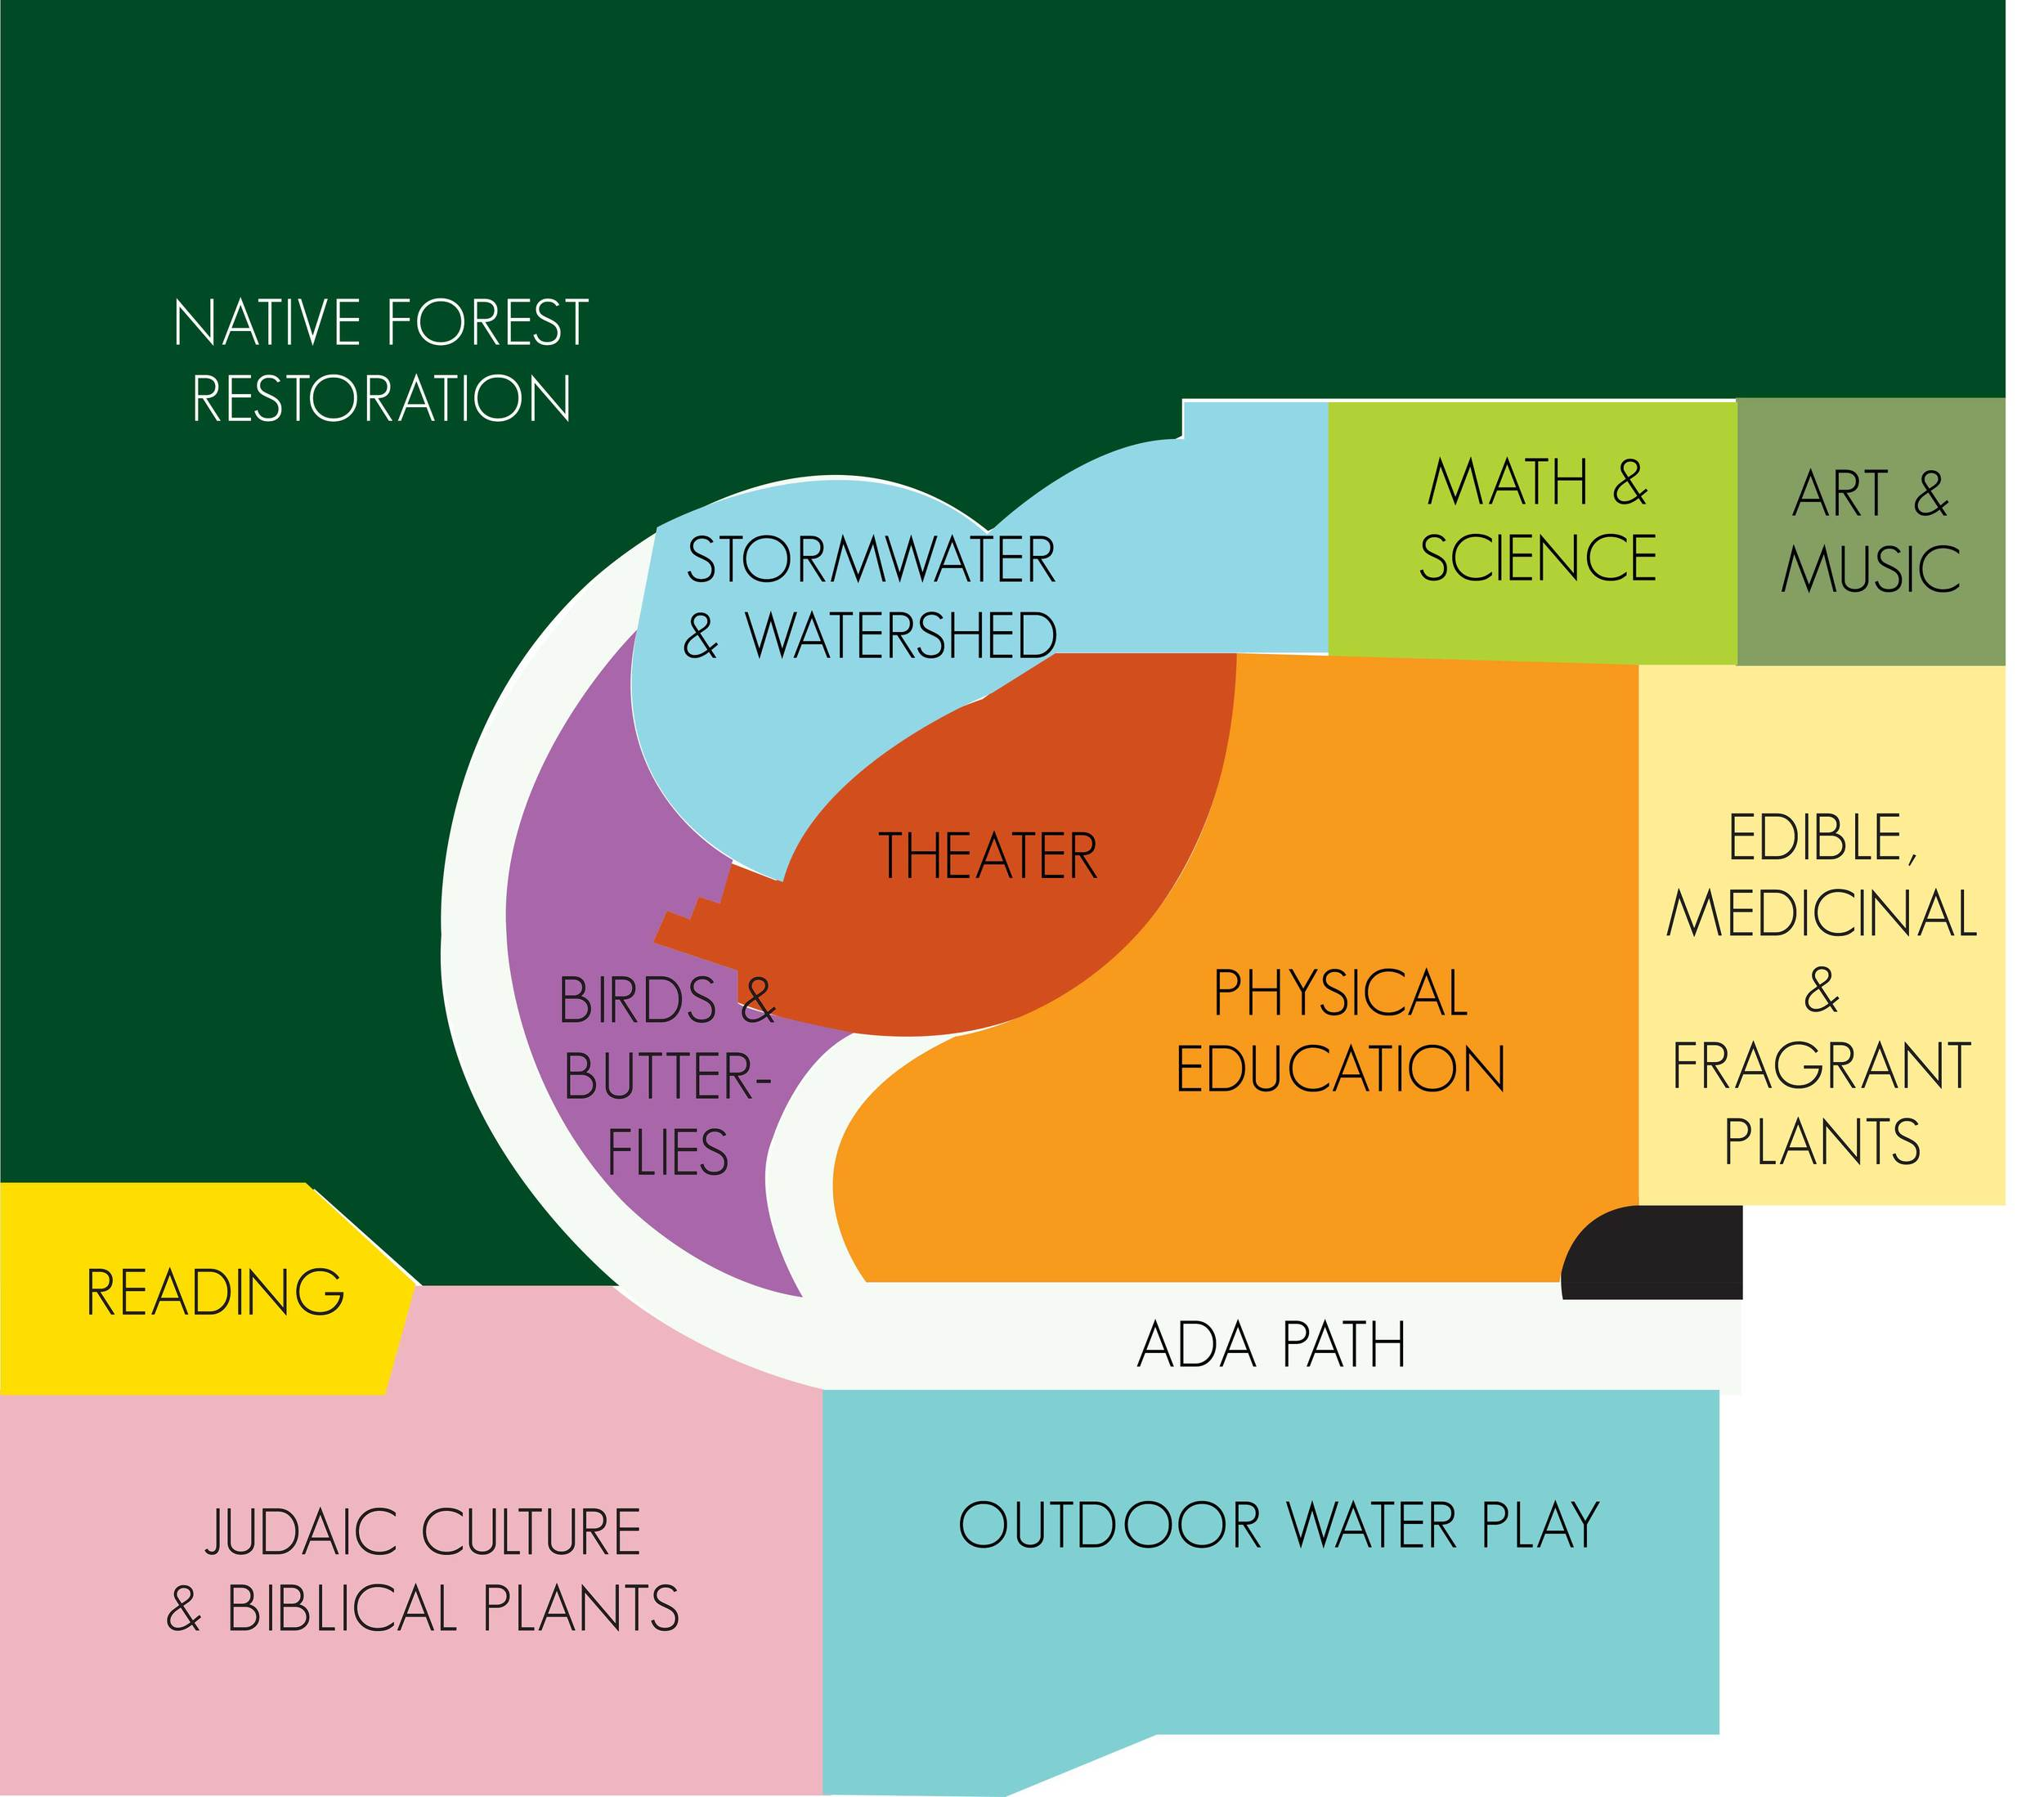 diagram of educational areas